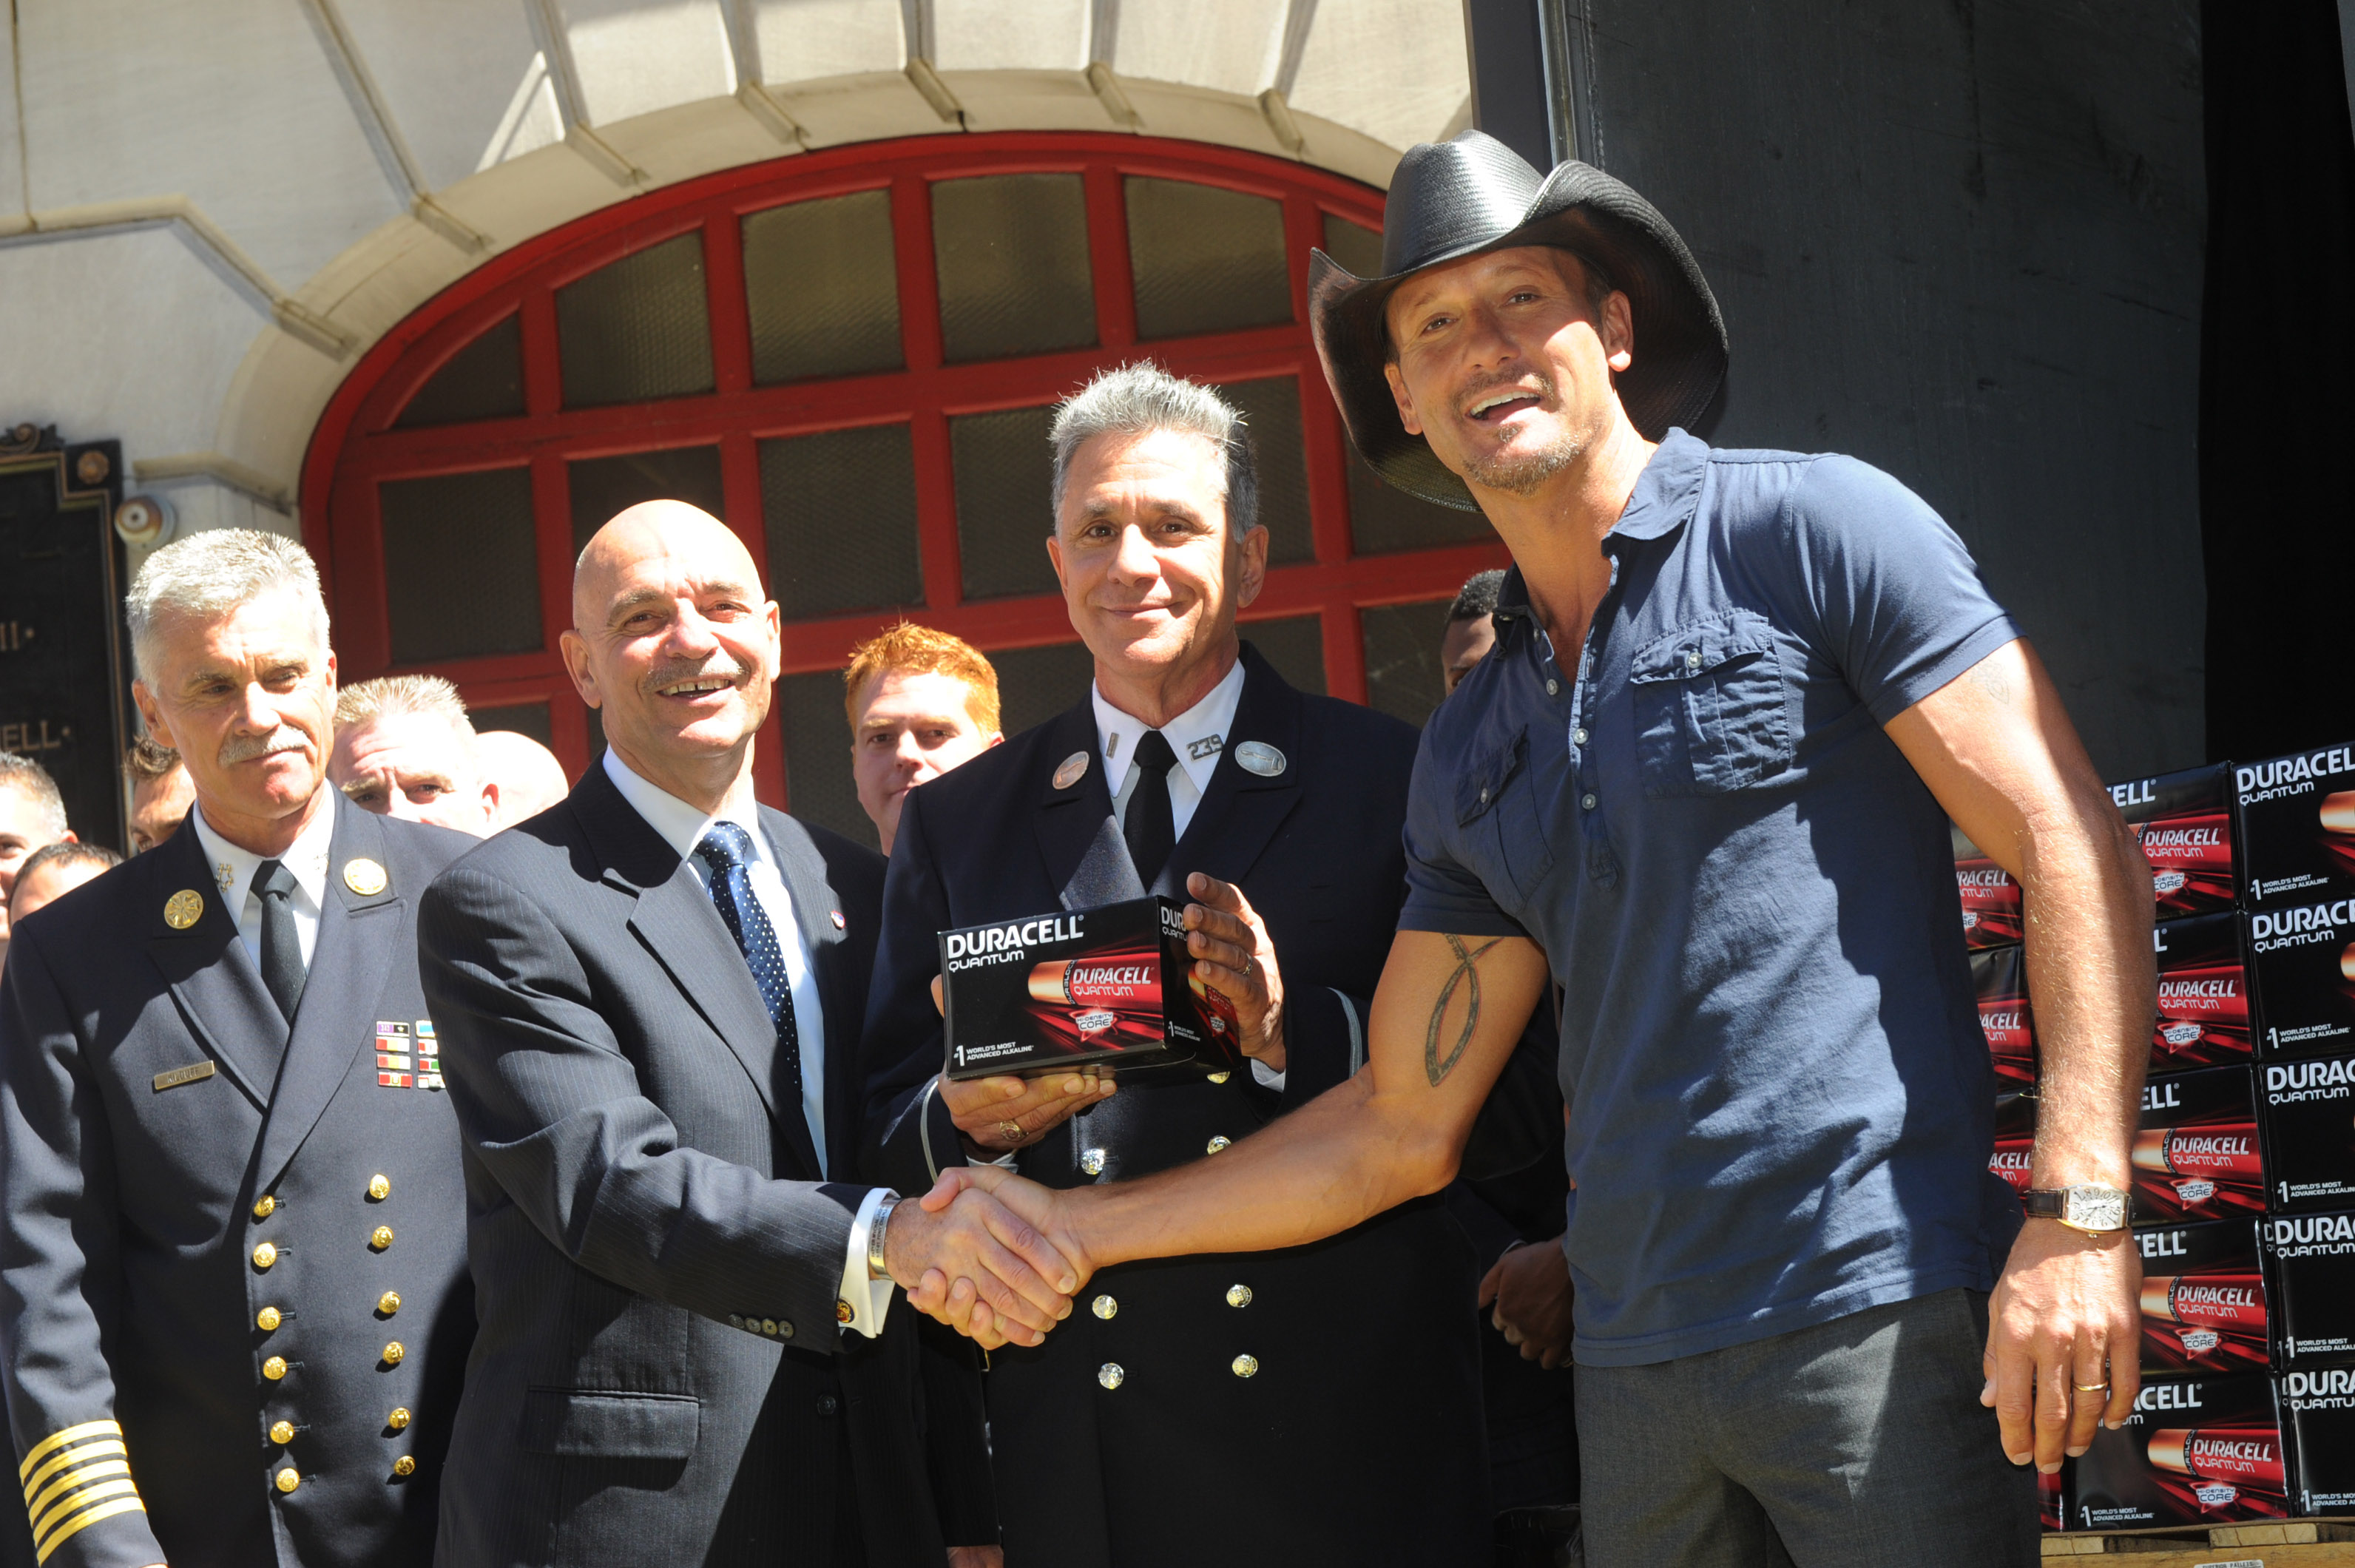 Country music star Tim McGraw hosts the launch event of Duracell's new Quantum battery and announces the donation of one million of these most powerful batteries to first responders, Thursday, Aug. 15, 2013, at an FDNY firehouse in New York. (Diane Bondareff/Invision for Duracell)